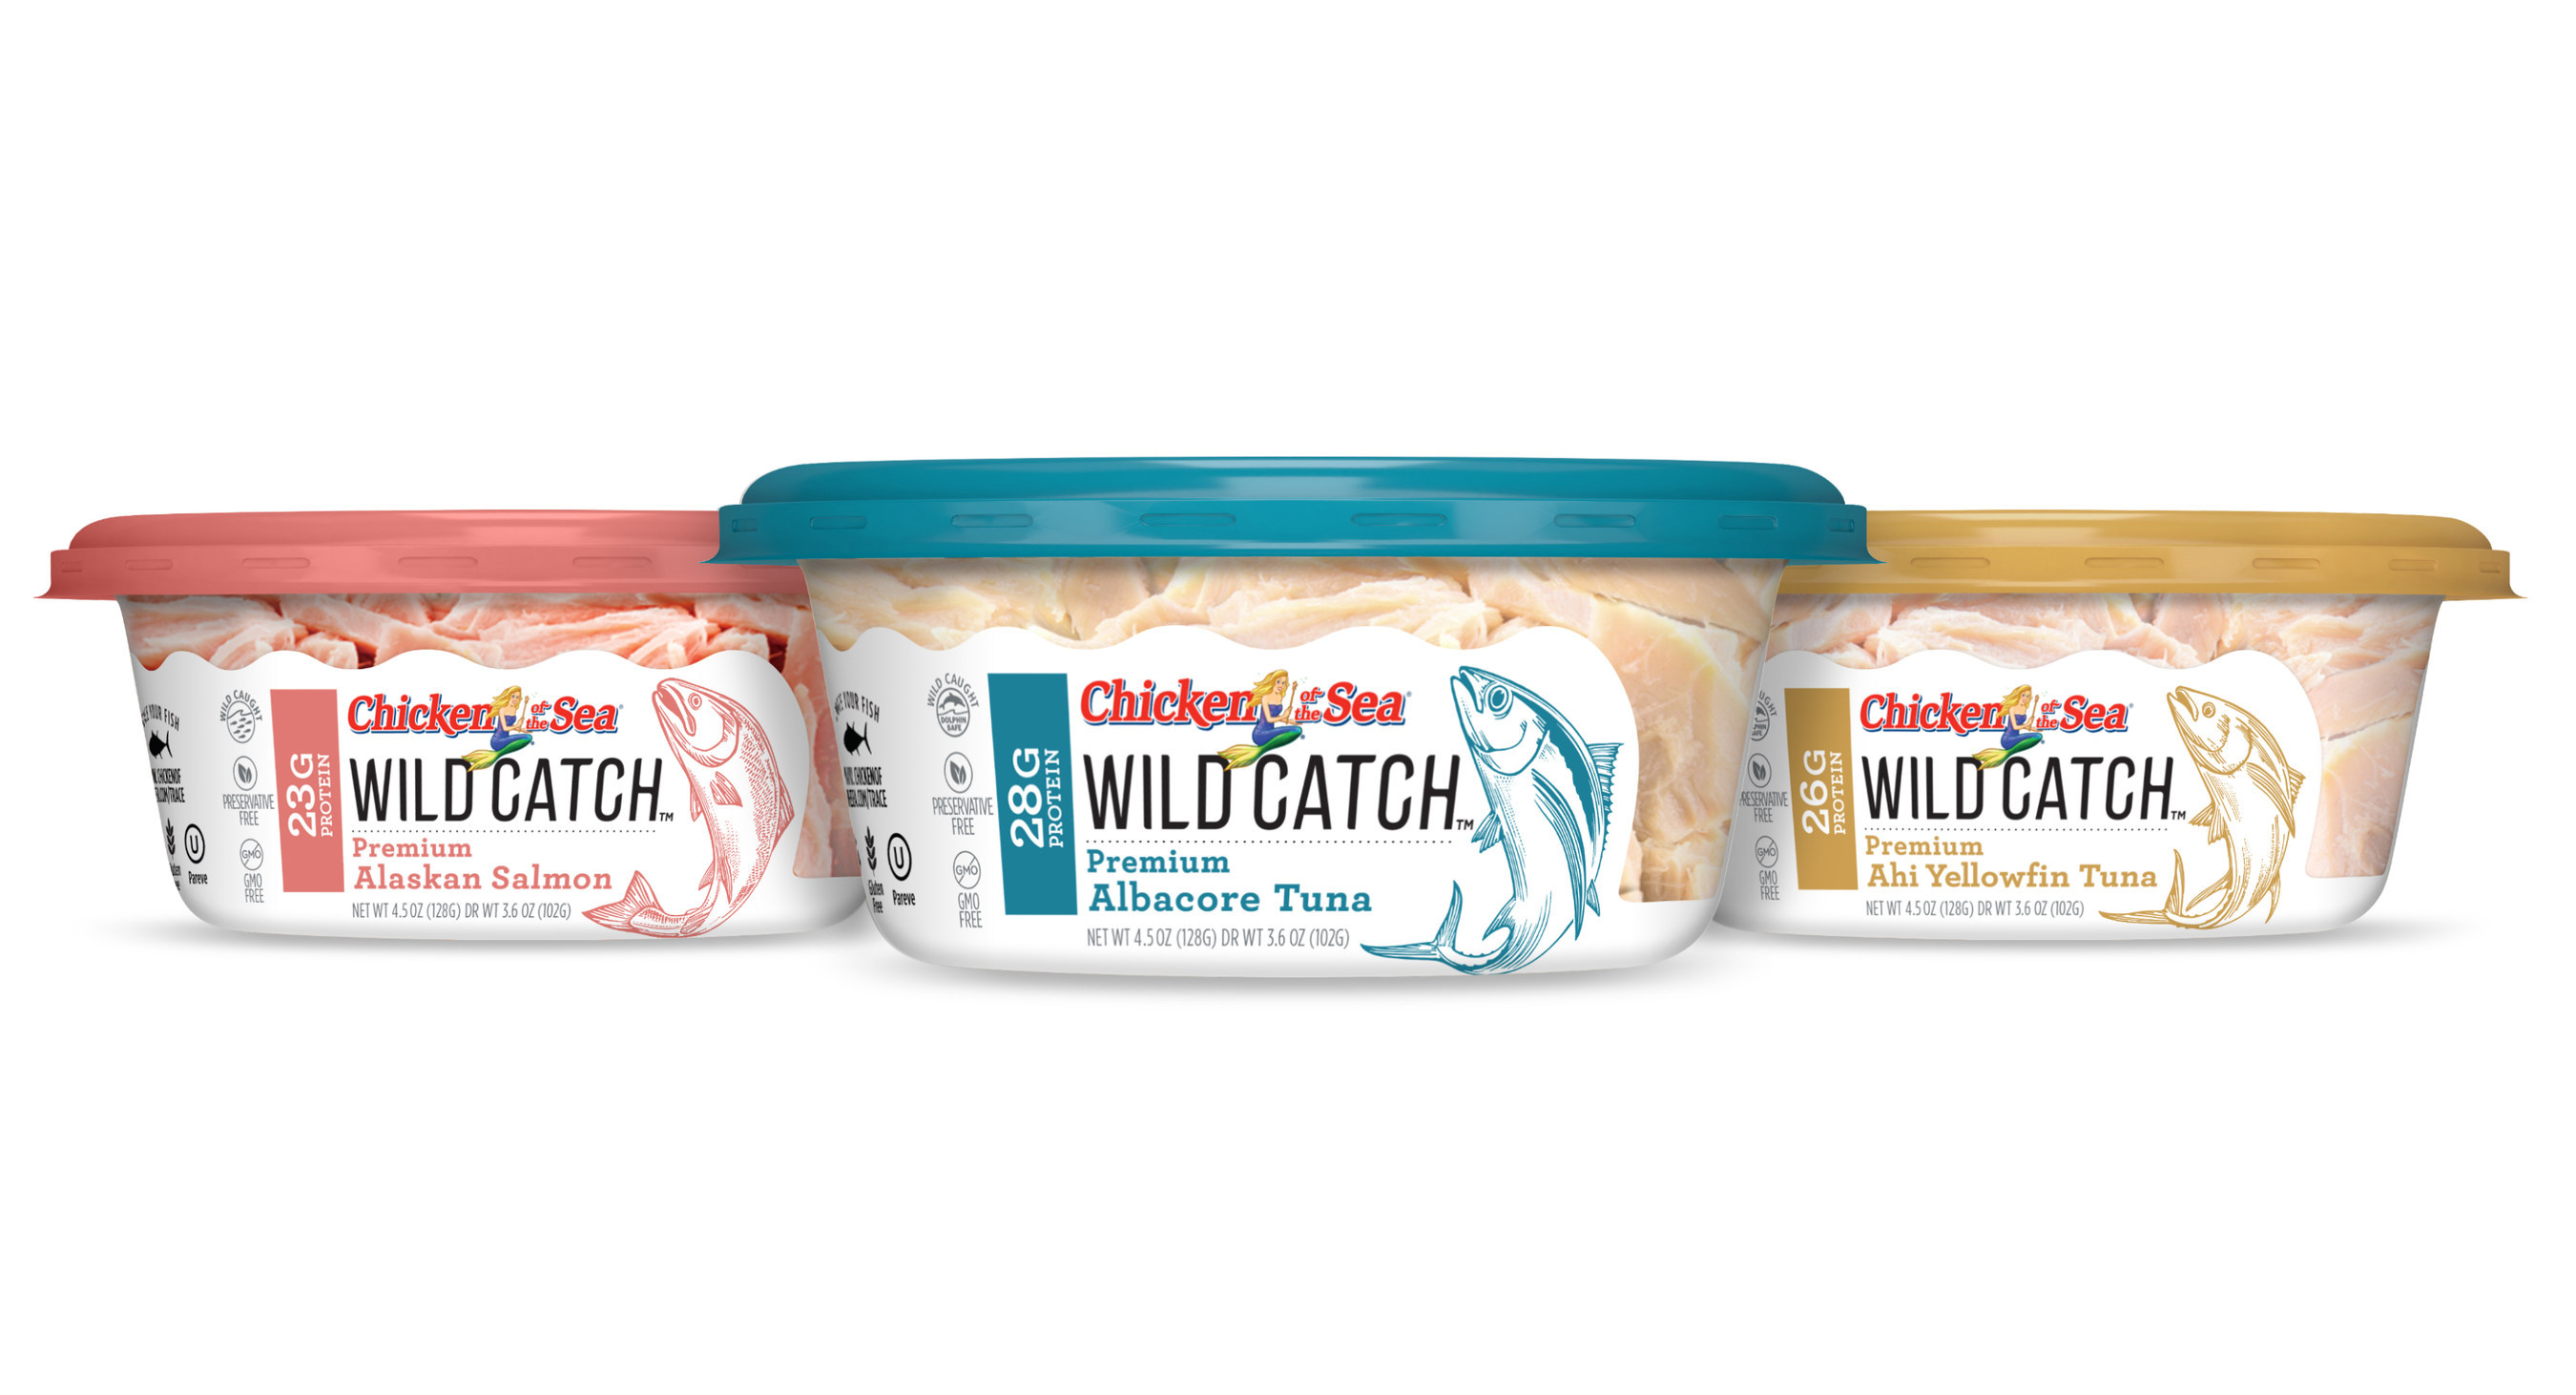 Chicken of the Sea Launches Premium Line Wild Catch Products